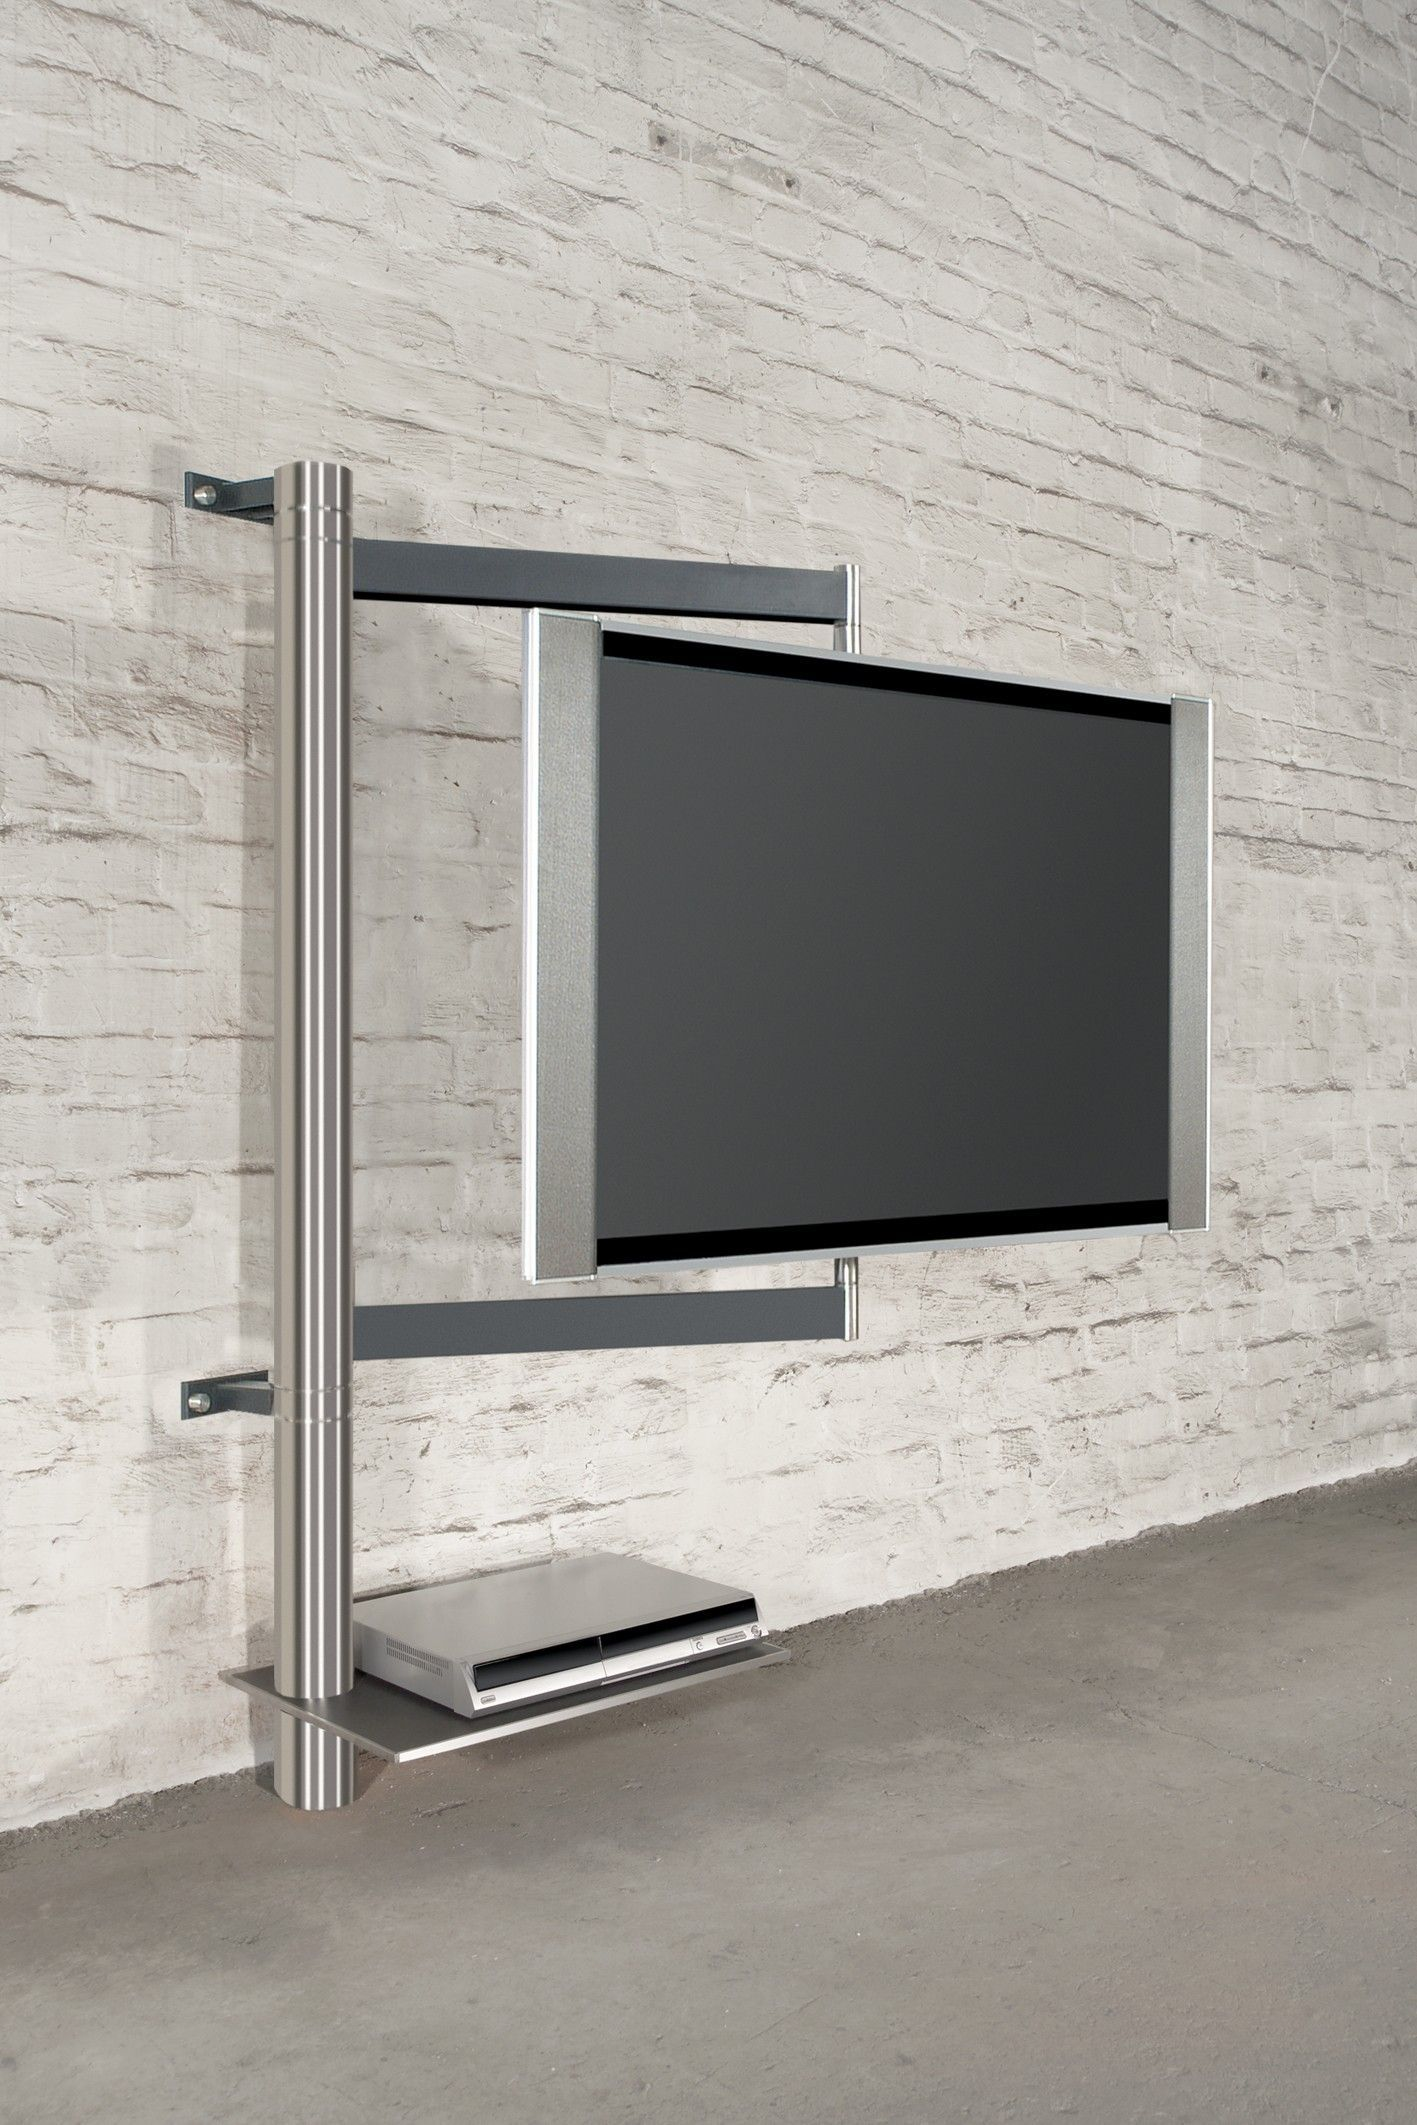 Appendere Tv Muro bedroom closet with built-in tv in 2020 | tv wall unit